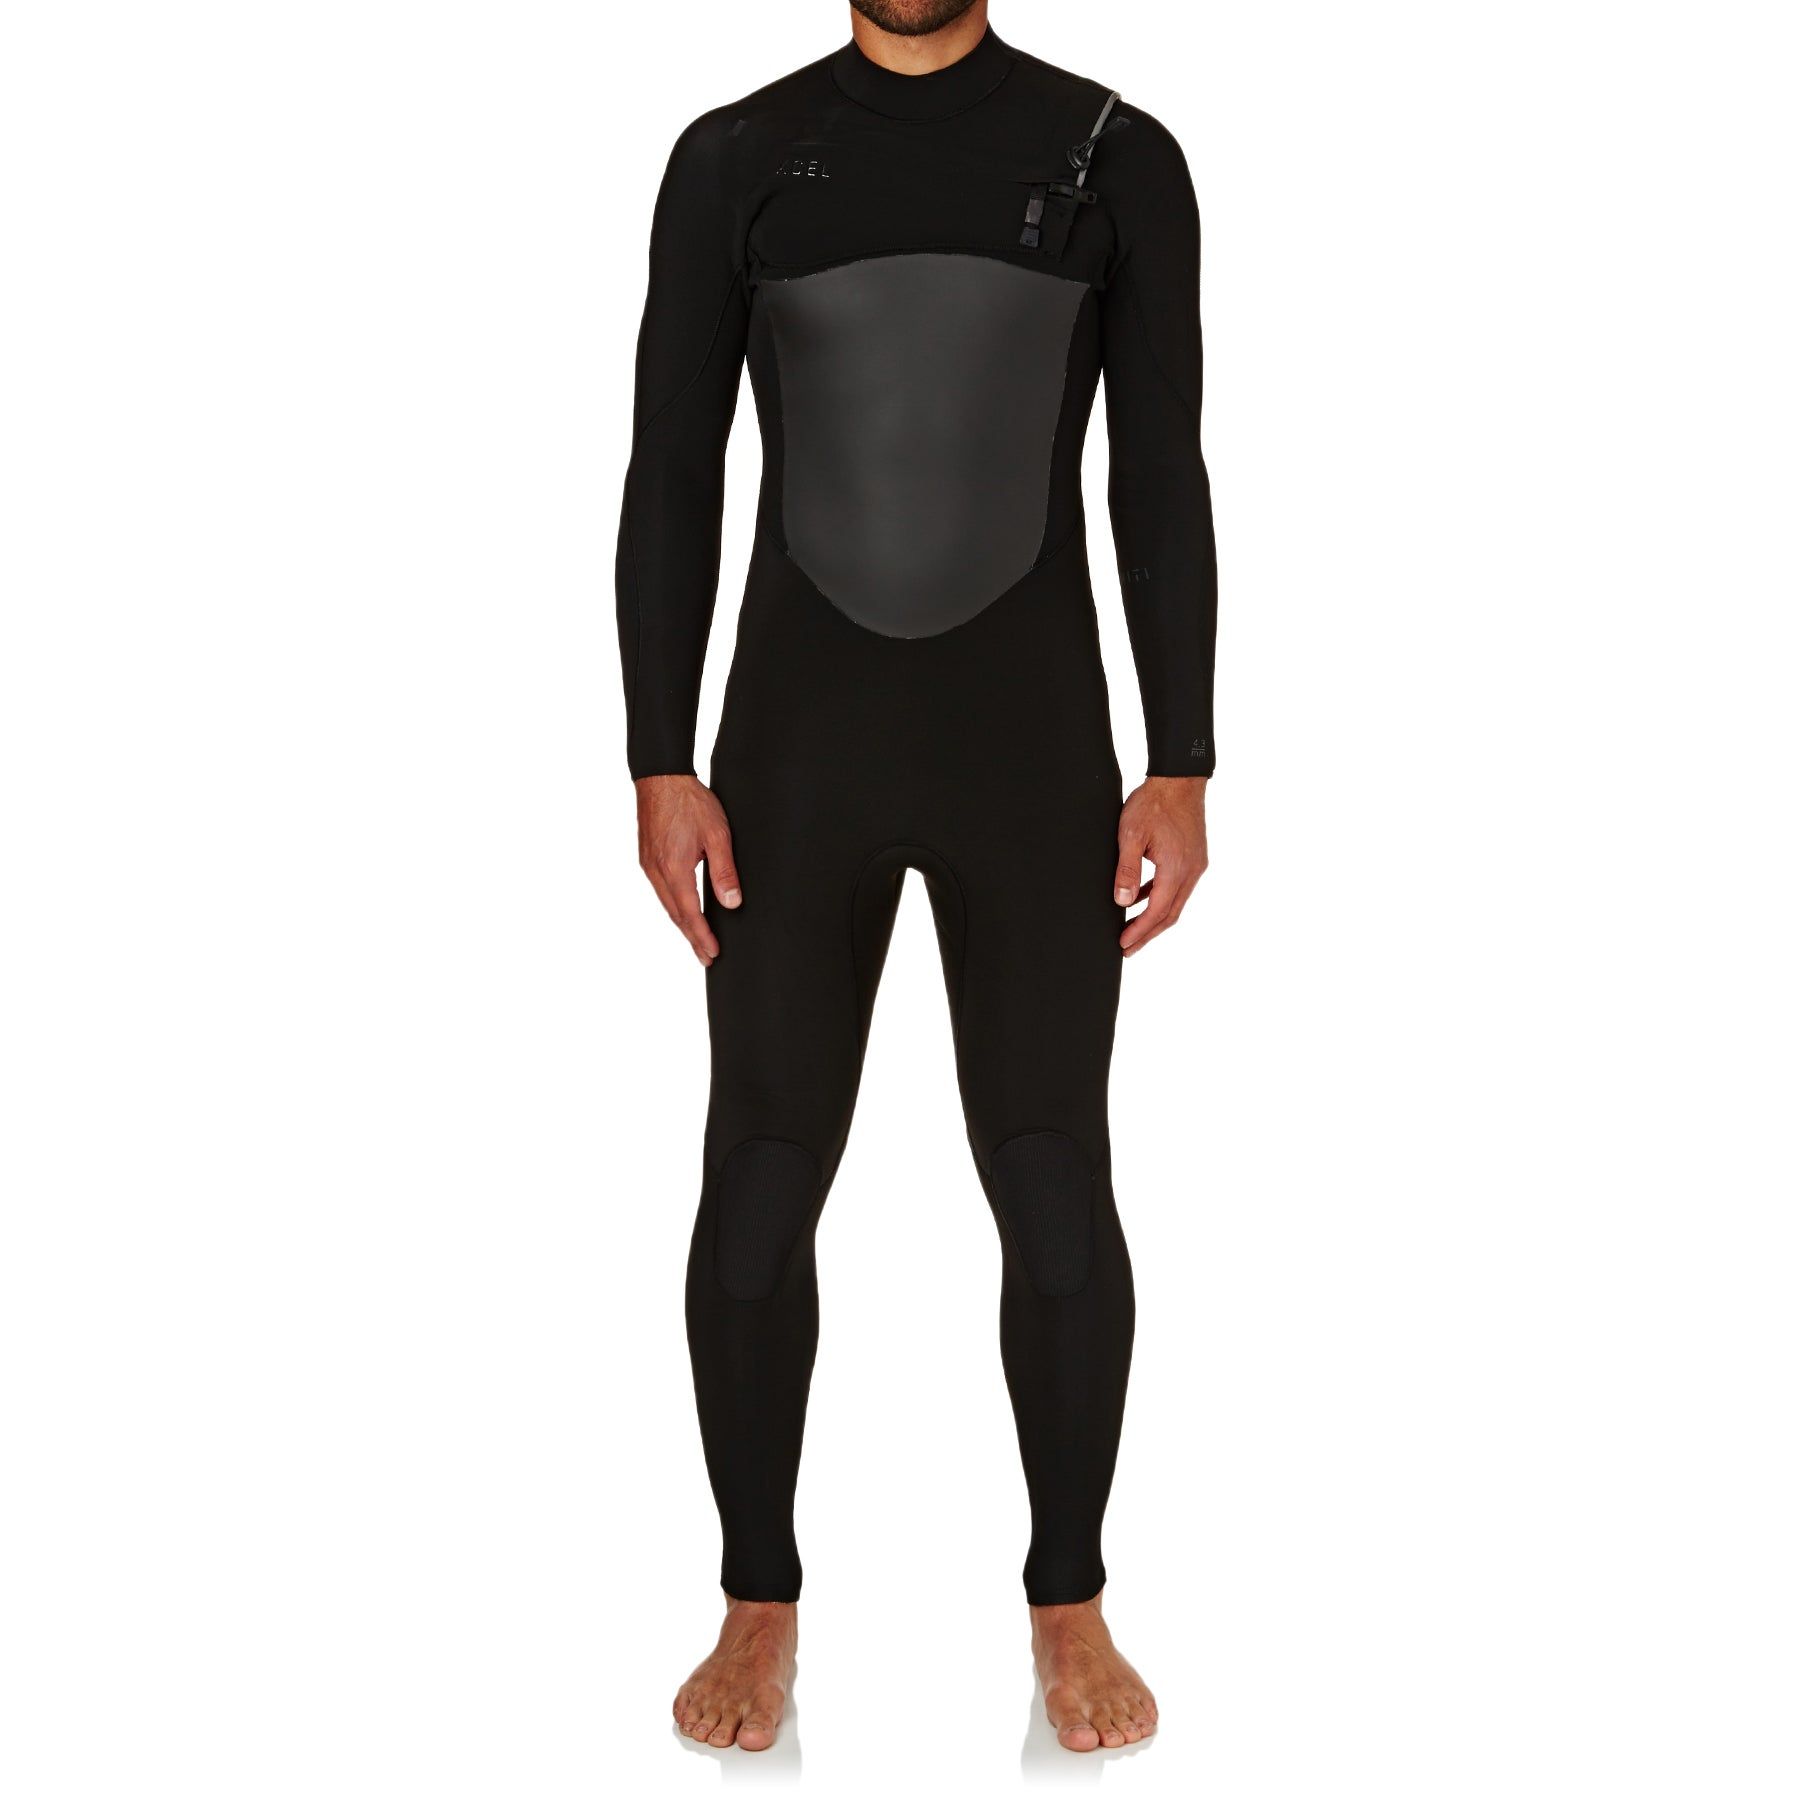 Xcel 5-4mm 2018 Infiniti Limited Edition X2 Chest Zip Wetsuit - Slate Black